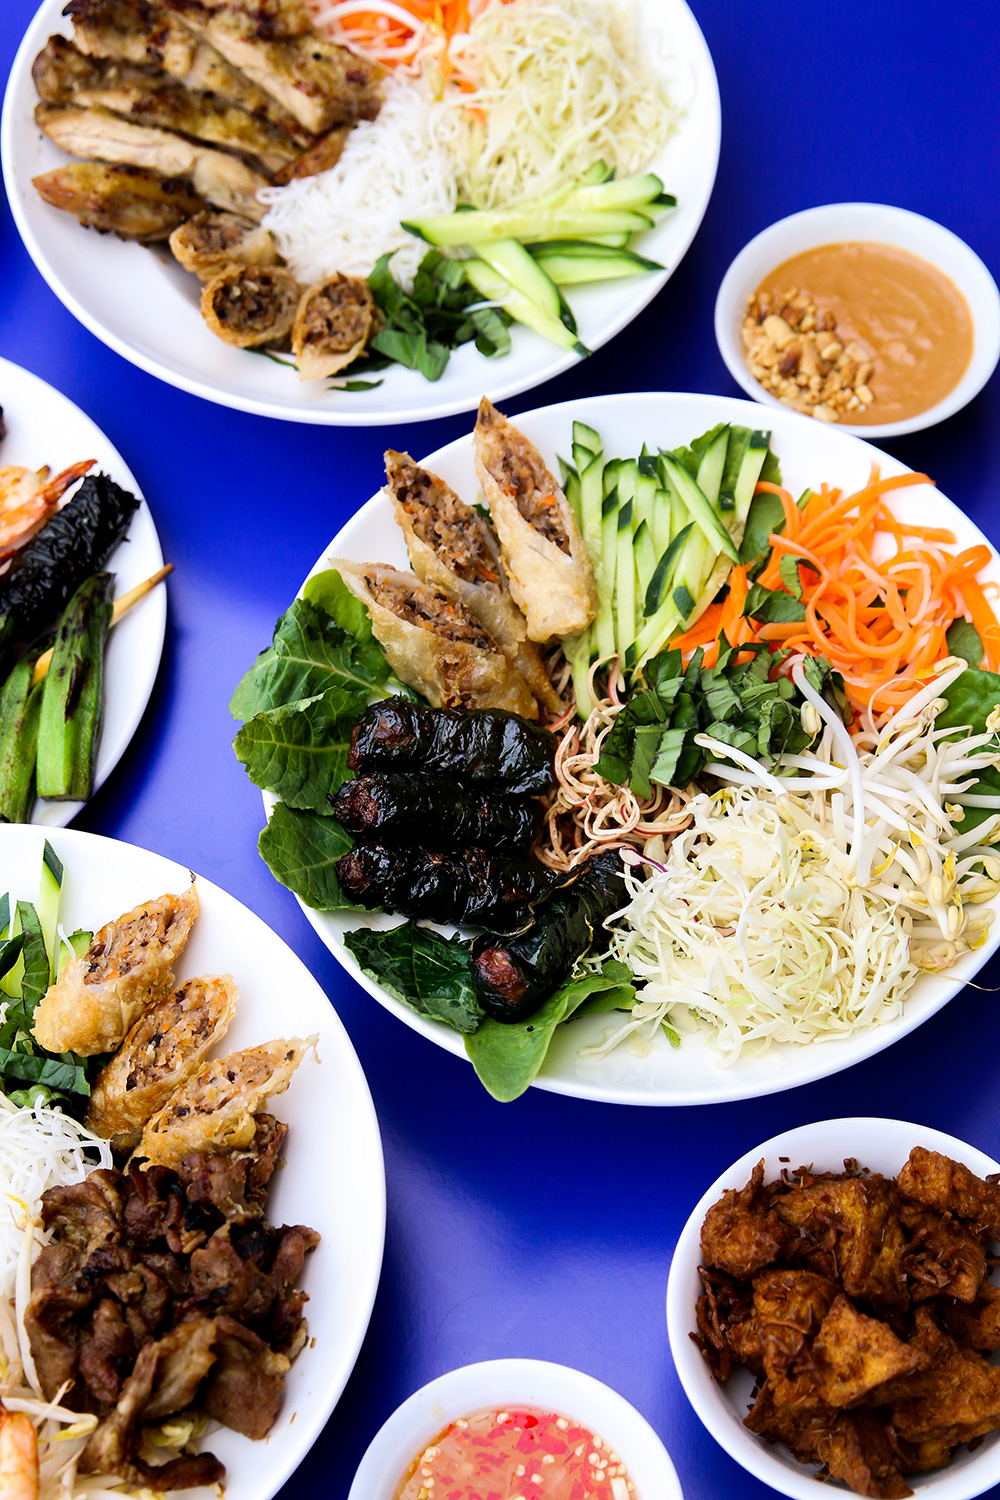 NAMì INTRODUCES NEW VERMICELLI-FOCUSED FOOD CART TO the WEST END - July 10, 2019NaMì welcomes a new member to its food cart family when the grab-and-go Vietnamese-cuisine favourite introduces a new 'NaMì 2.0' cart featuring vermicelli bowls to the corner of Burrard and Davie Streets in the heart of Vancouver's West End beginning Wednesday, July 17.The latest project for foodie and entrepreneur Kevin Thach, who got his first-hand knowledge of the industry at his parents' award-winning Pho Thai Hoa 1 Vietnamese restaurant in Vancouver, NaMì 2.0 follows in the footsteps of the first 'NaMì OG' food cart that made its debut in April and offers fresh-made báhn mì baguette sandwiches.To celebrate the launch, the first 50 customers to greet NaMì 2.0 at its new home during its inaugural service starting at 11 a.m. on July 17 will receive a free vermicelli bowl. The cart will also feature a $7 vermicelli-bowl special throughout the first week of service, July 17 to 24.